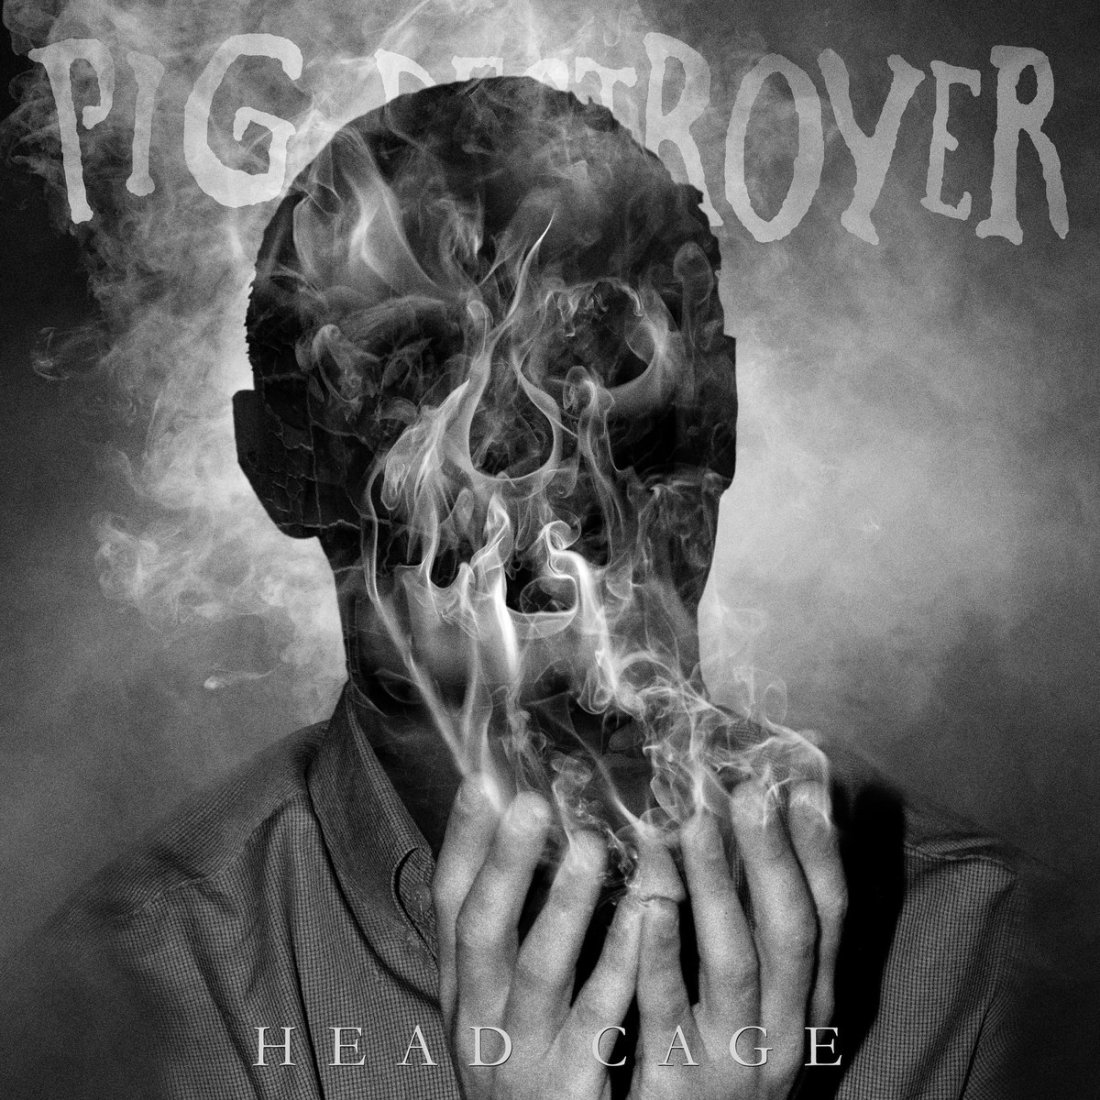 It's been six years since Pig Destroyer released Book Burner. Add the  additional five years between that one and 2007's Phantom Limb, and we're  now 11 years ...